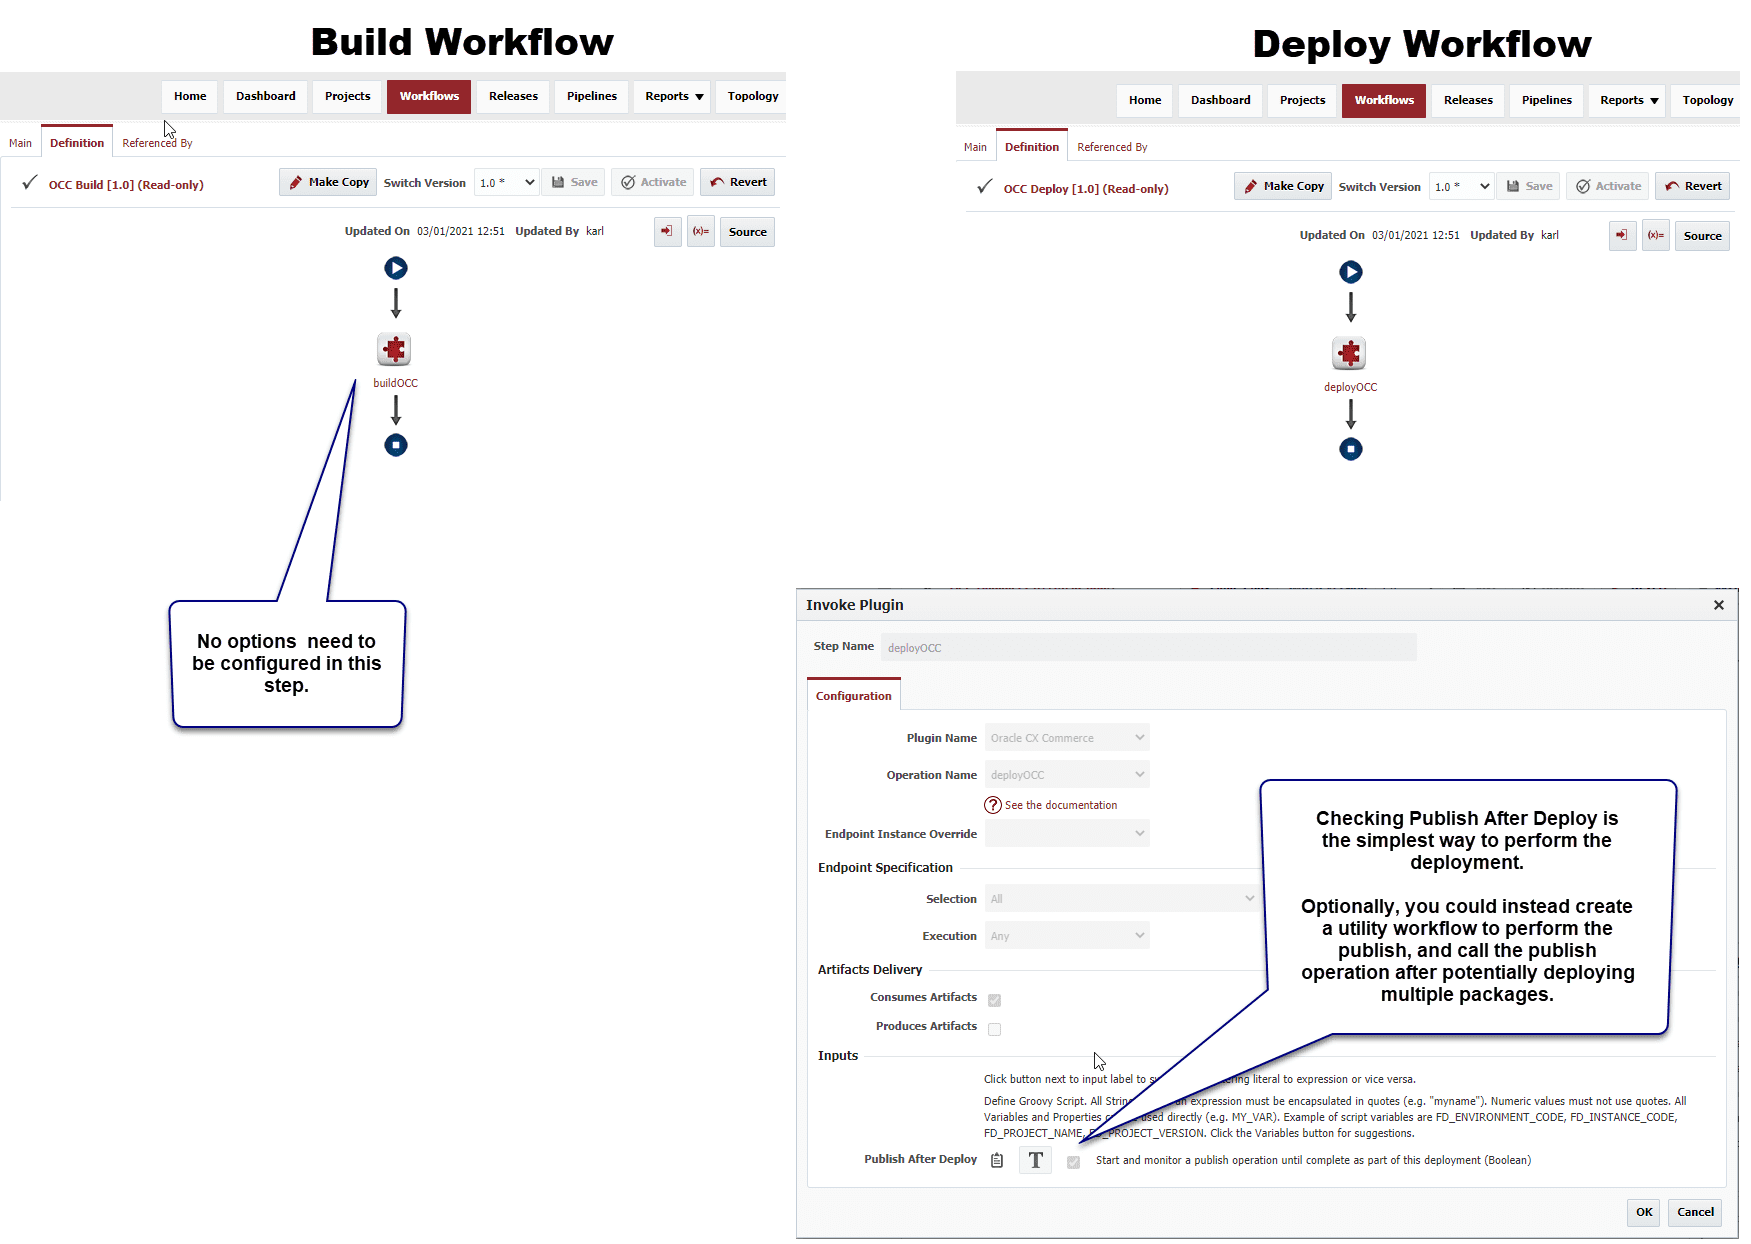 Build workflow and Deploy workflow